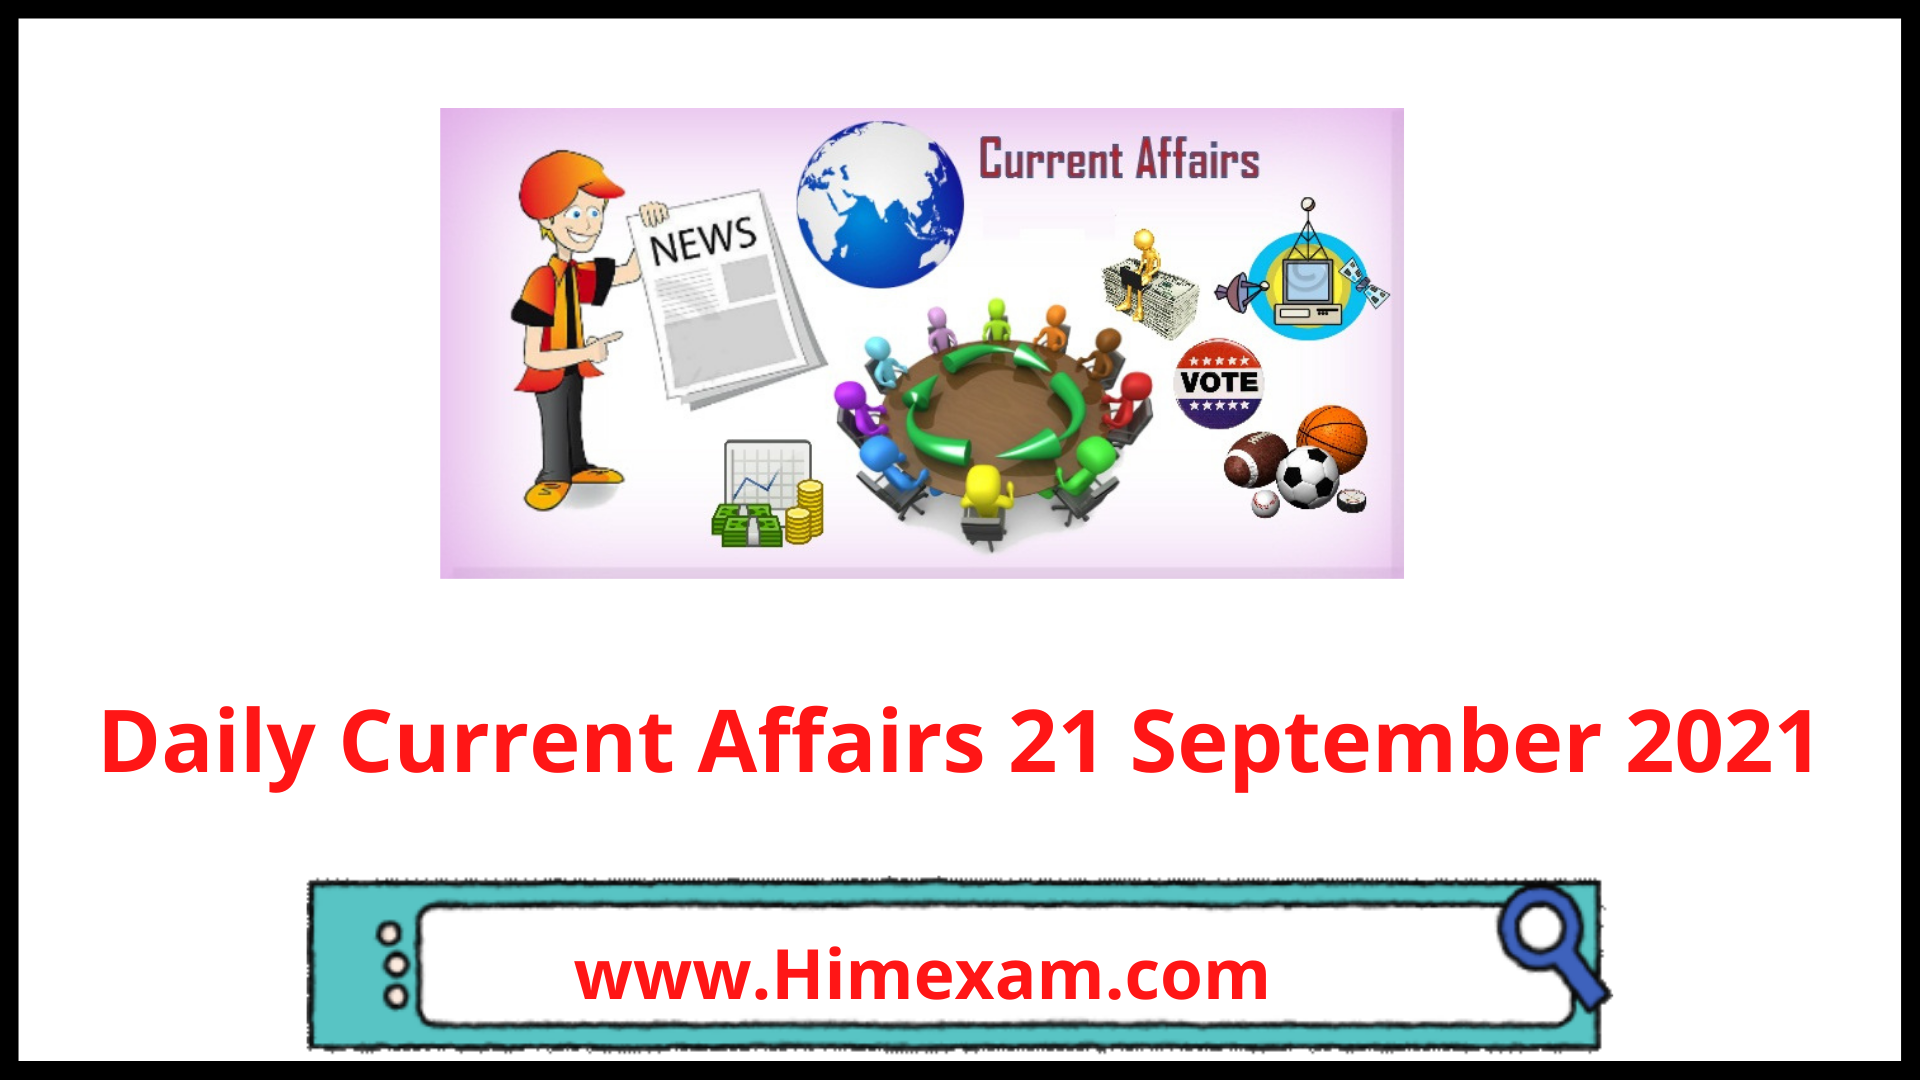 Daily Current Affairs 21 September 2021